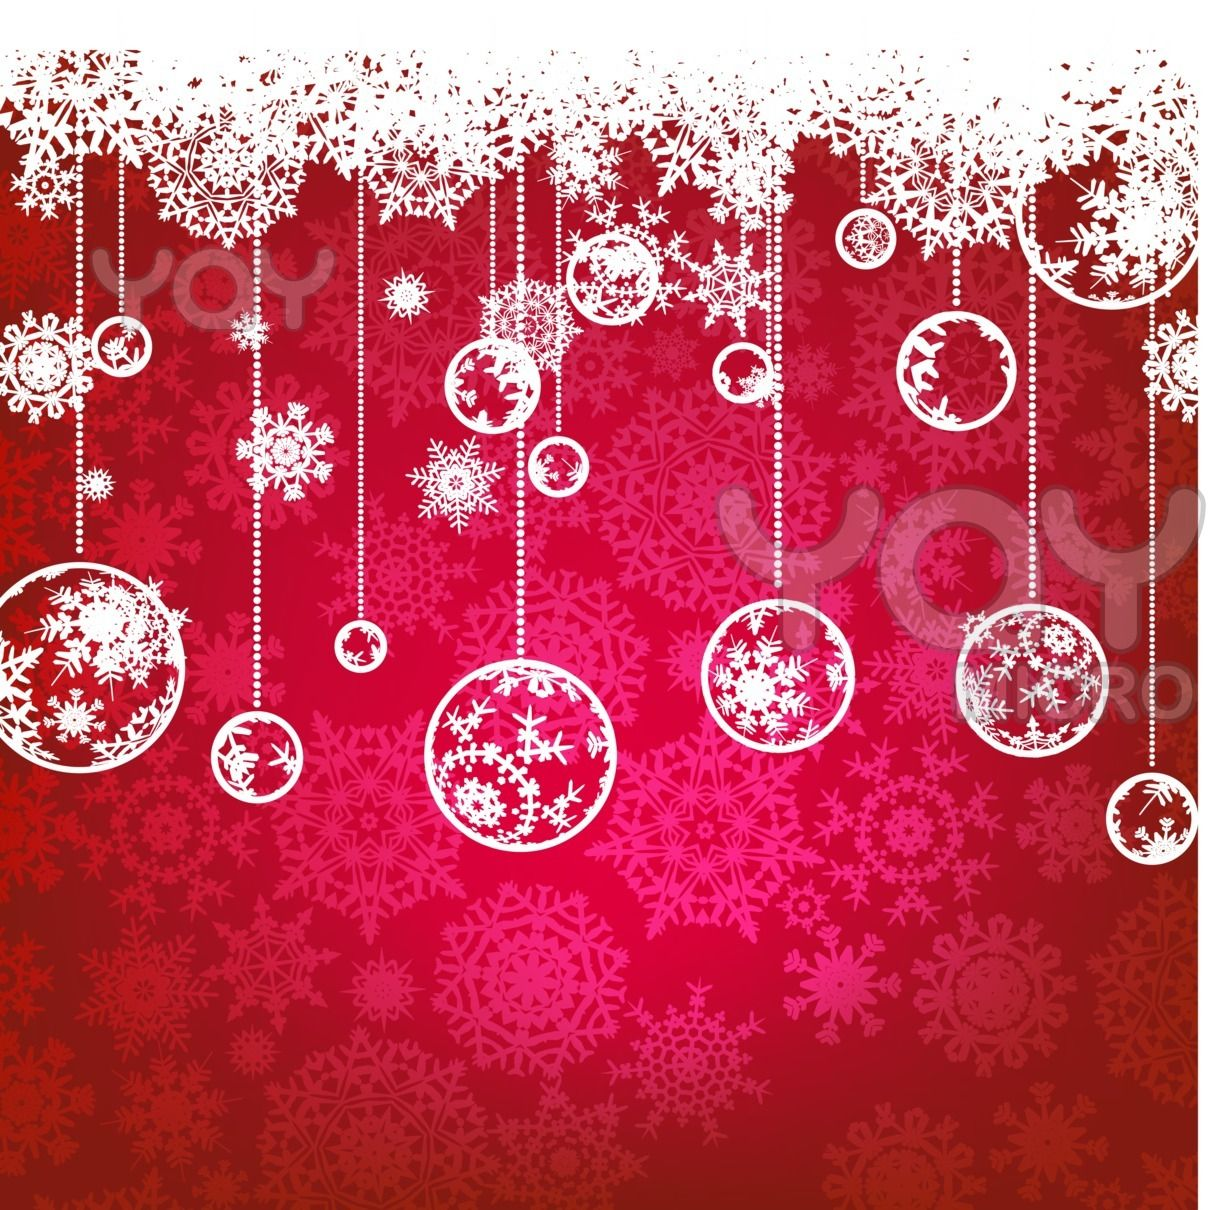 We\'re already designing our holiday cards - they\'re going to look ...